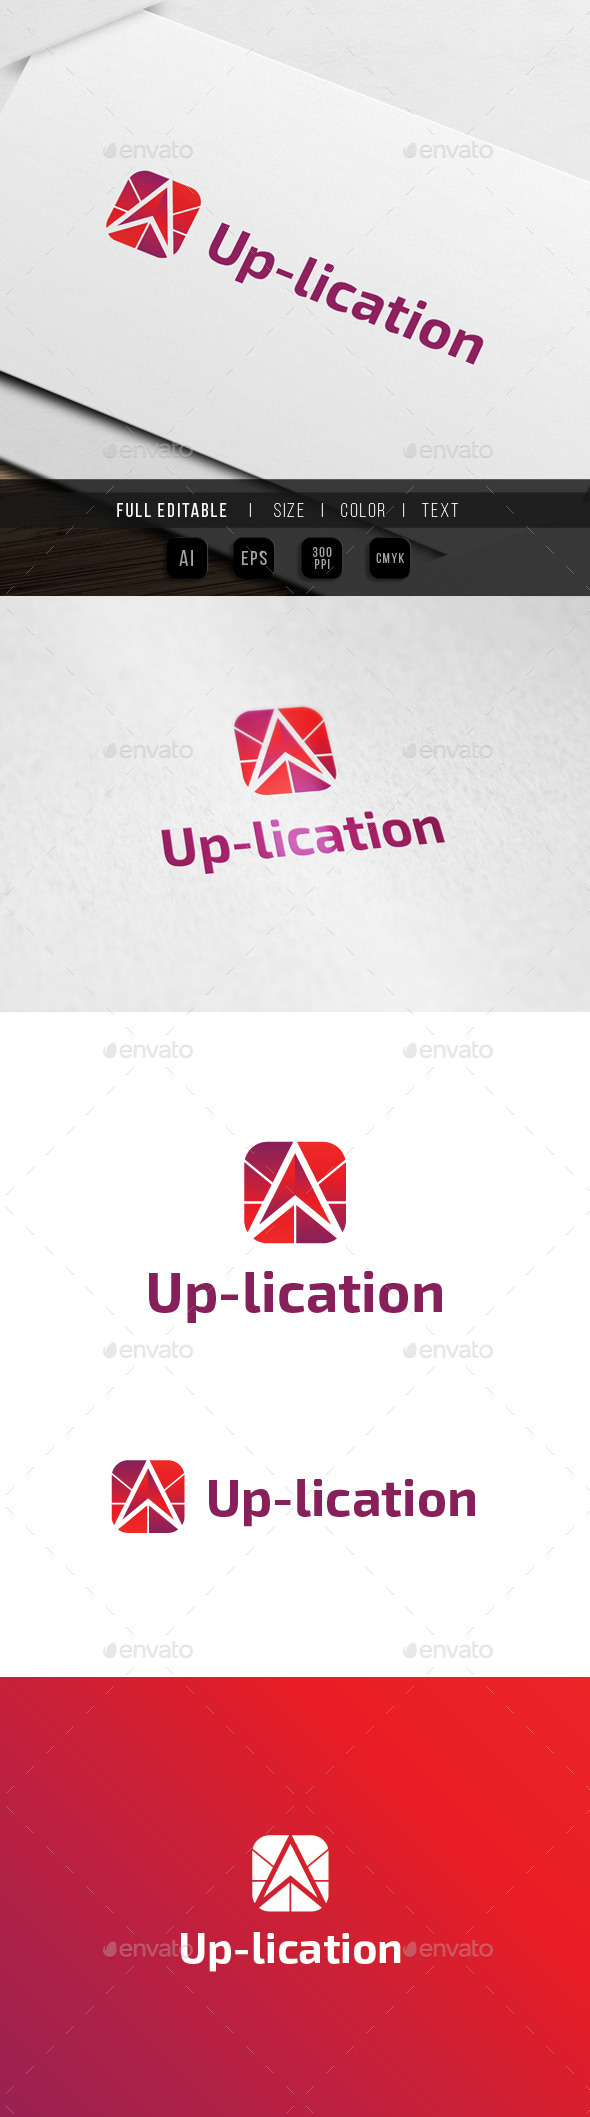 Up Application Logo - Abstract Logo Templates